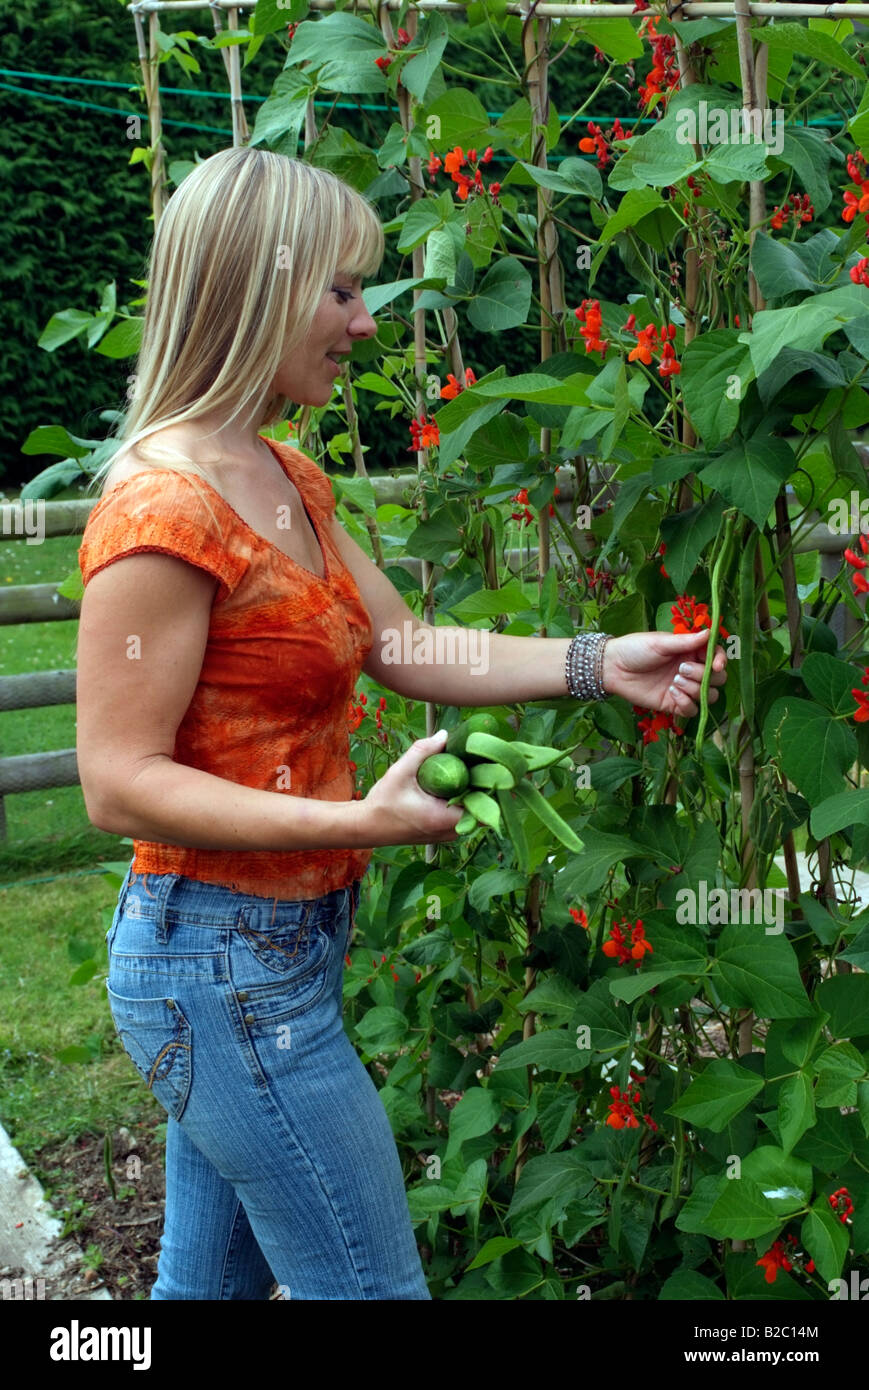 Woman picking runner beans in country garden southern England UK - Stock Image